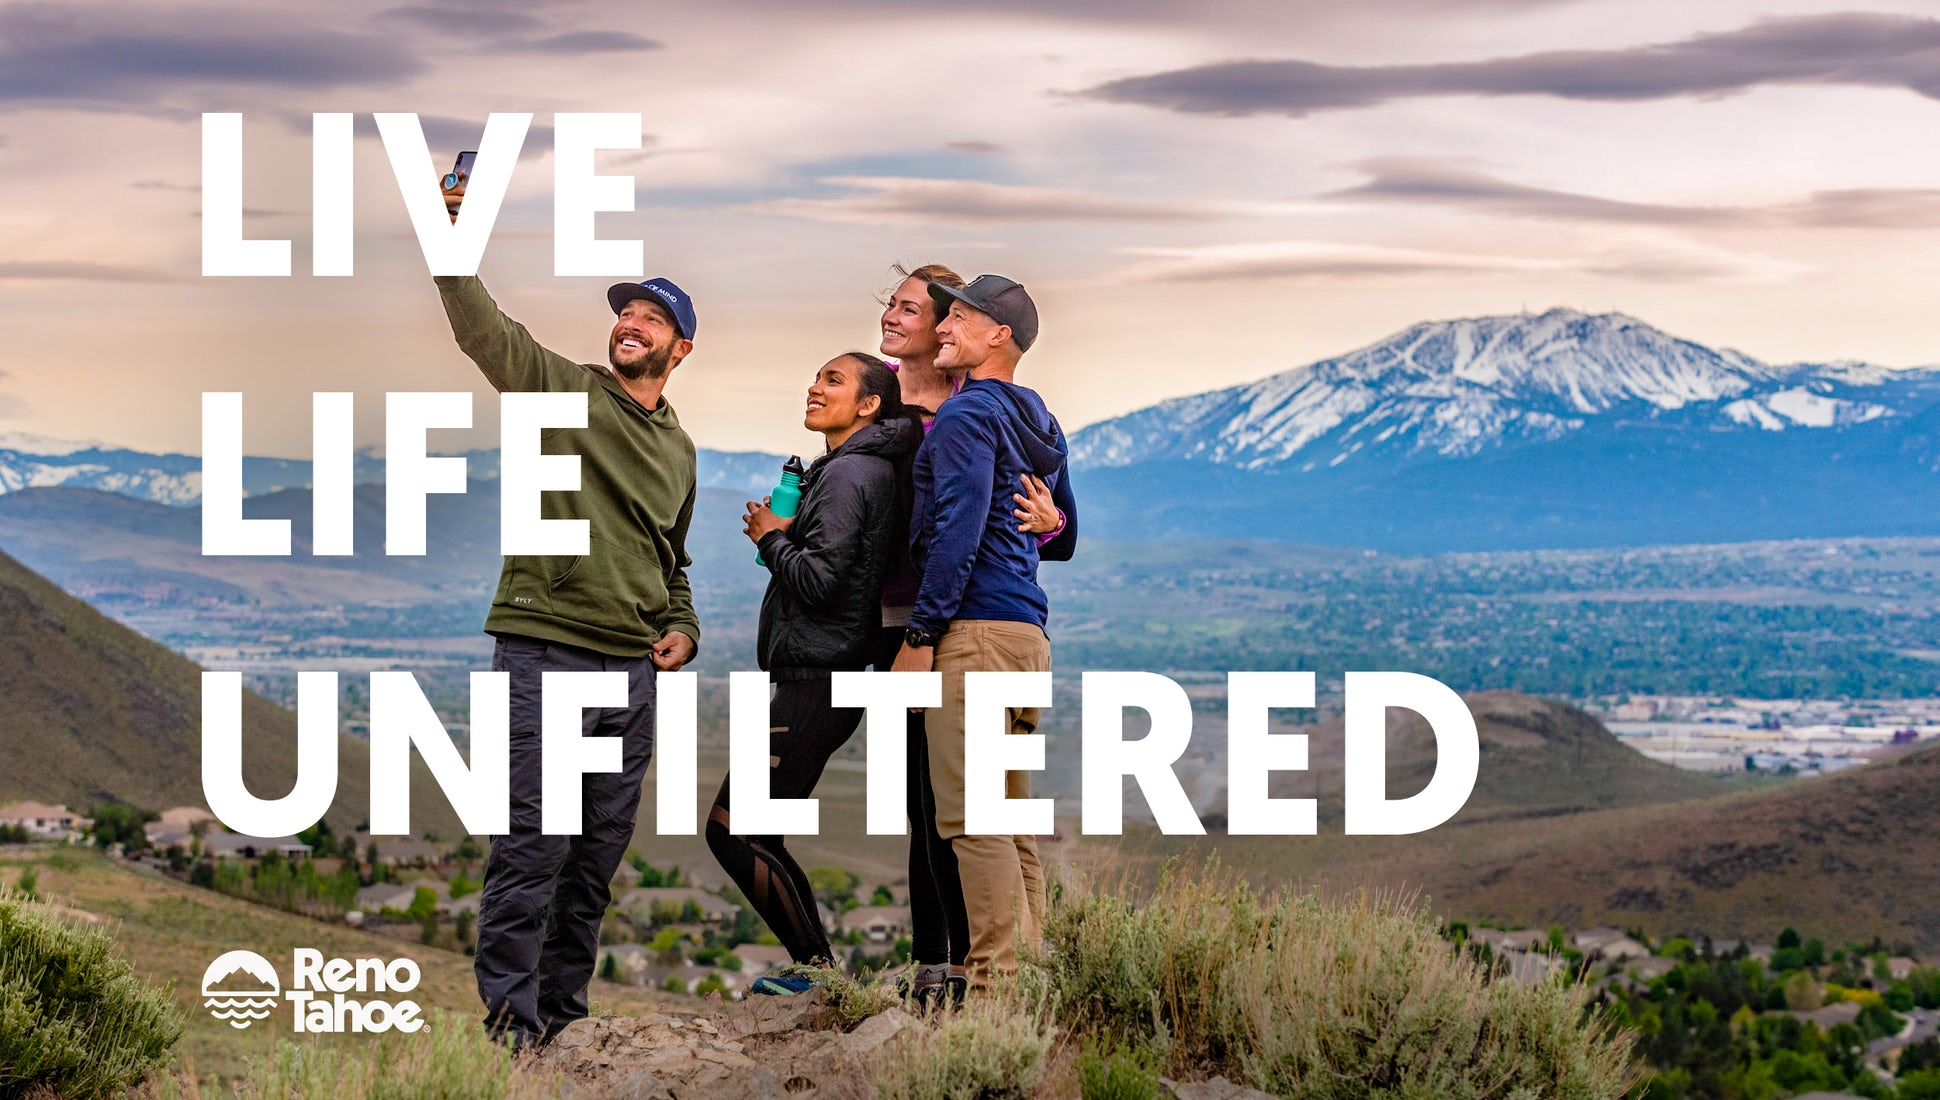 Live Life Unfiltered: 72 Hours in Reno Tahoe